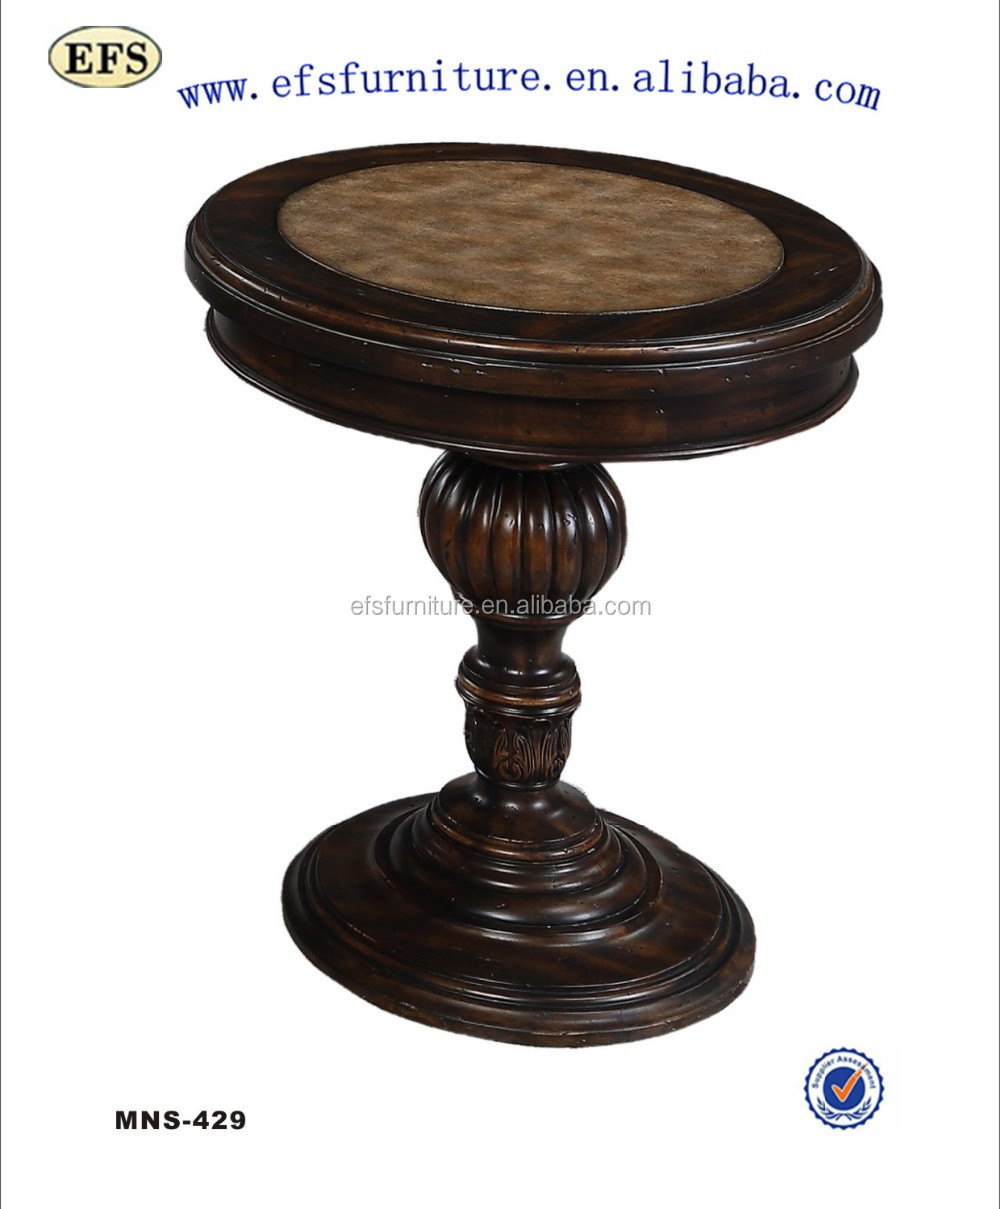 Wooden roulette buy black wooden roulette blackjack table led - Solid Wood Poker Table Top Solid Wood Poker Table Top Suppliers And Manufacturers At Alibaba Com